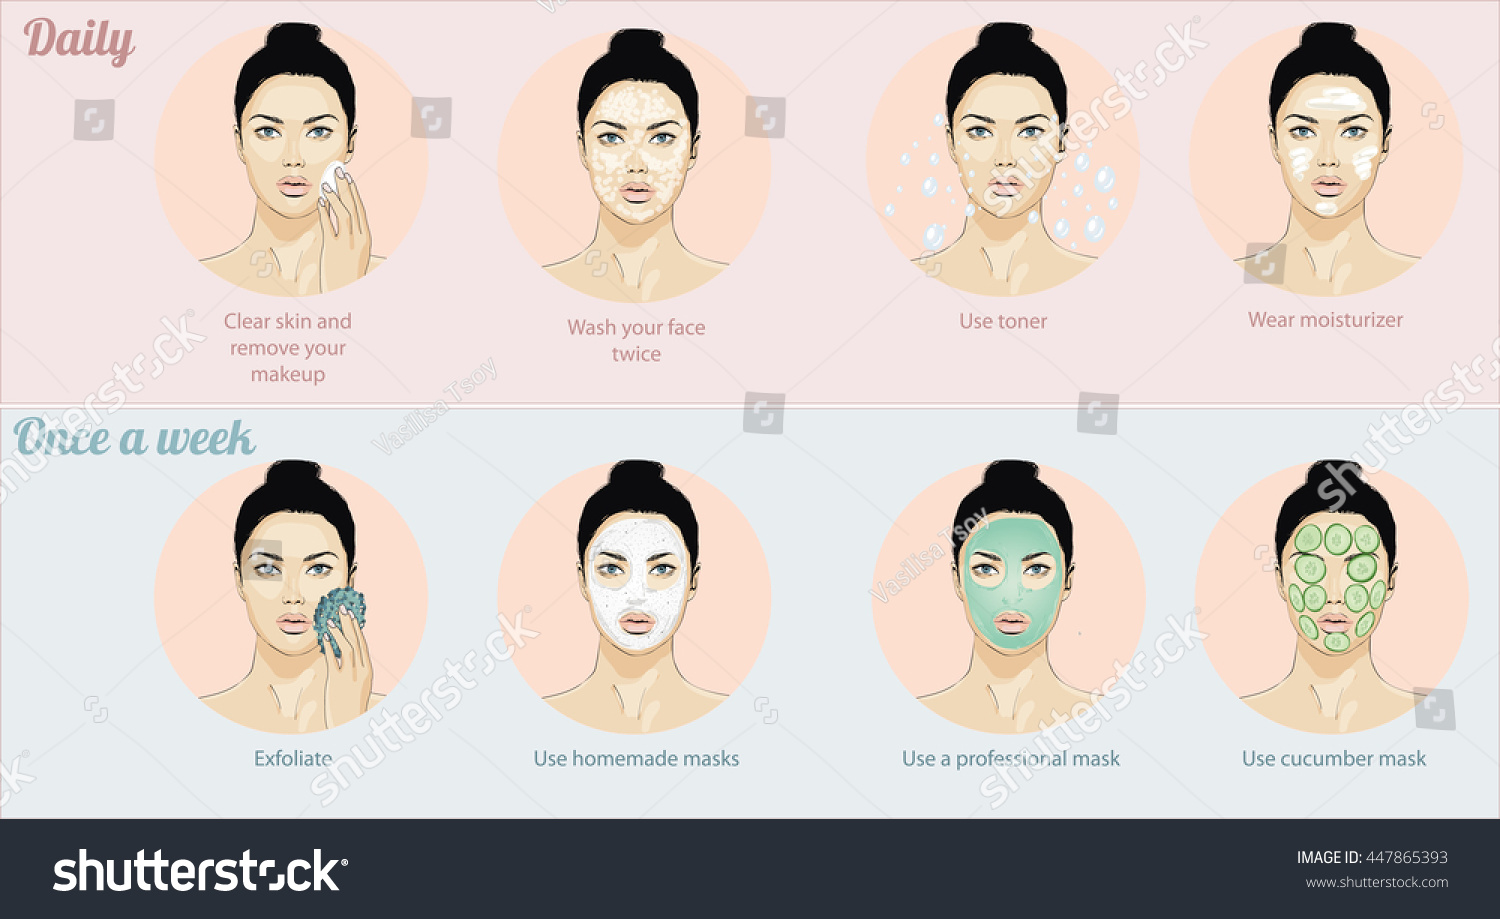 Info graphic daily face care correct stock vector 447865393 info graphic daily face care the correct diagram of the washing and skin care pooptronica Image collections